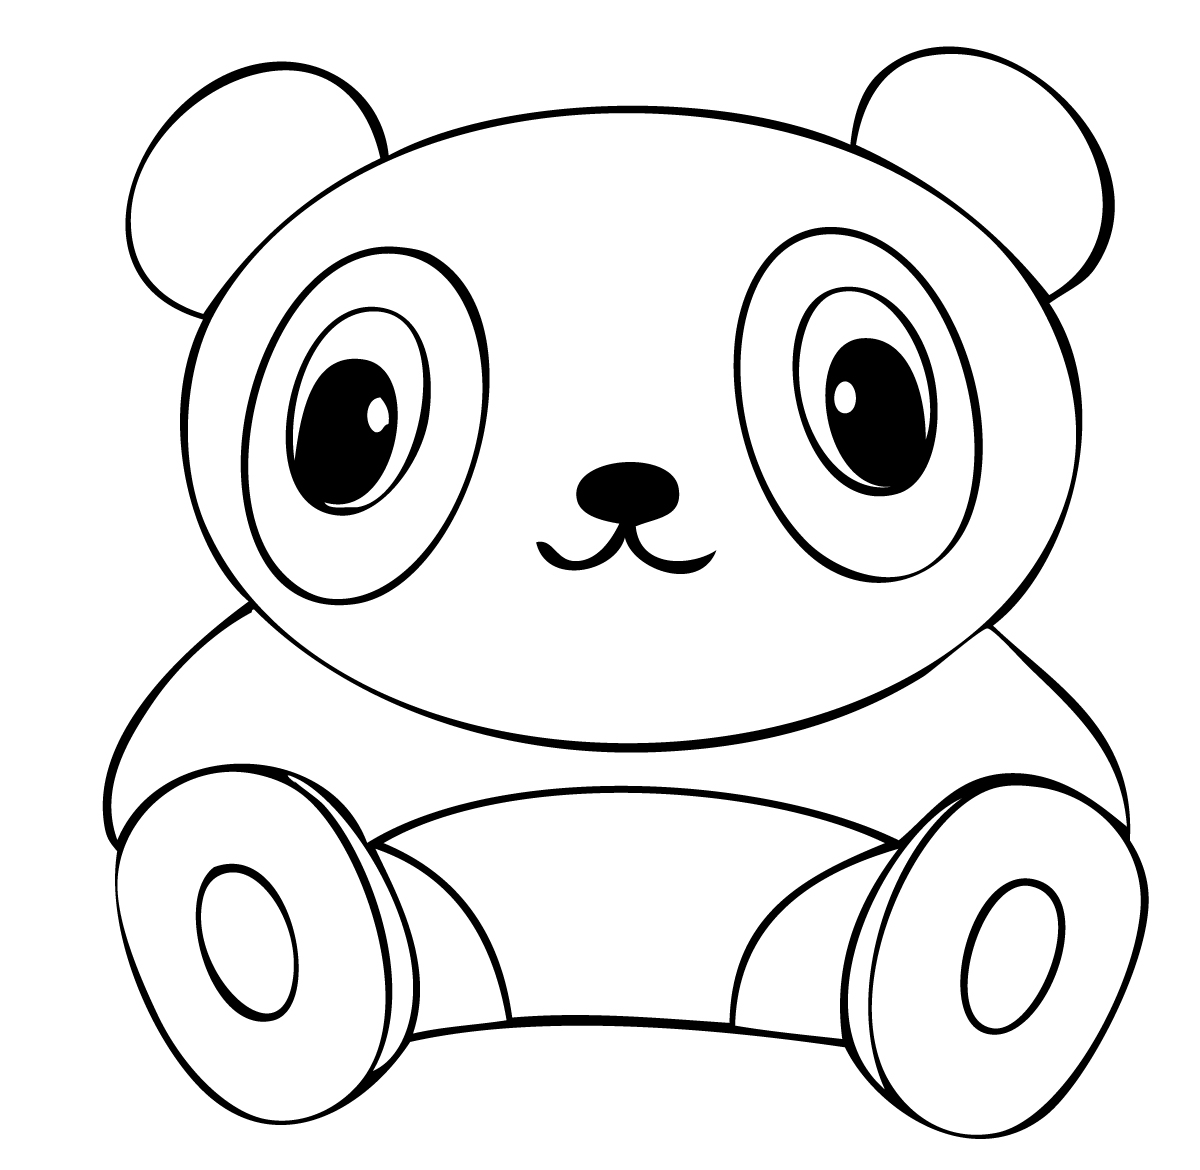 coloring pages panda pandas to download for free pandas kids coloring pages panda coloring pages